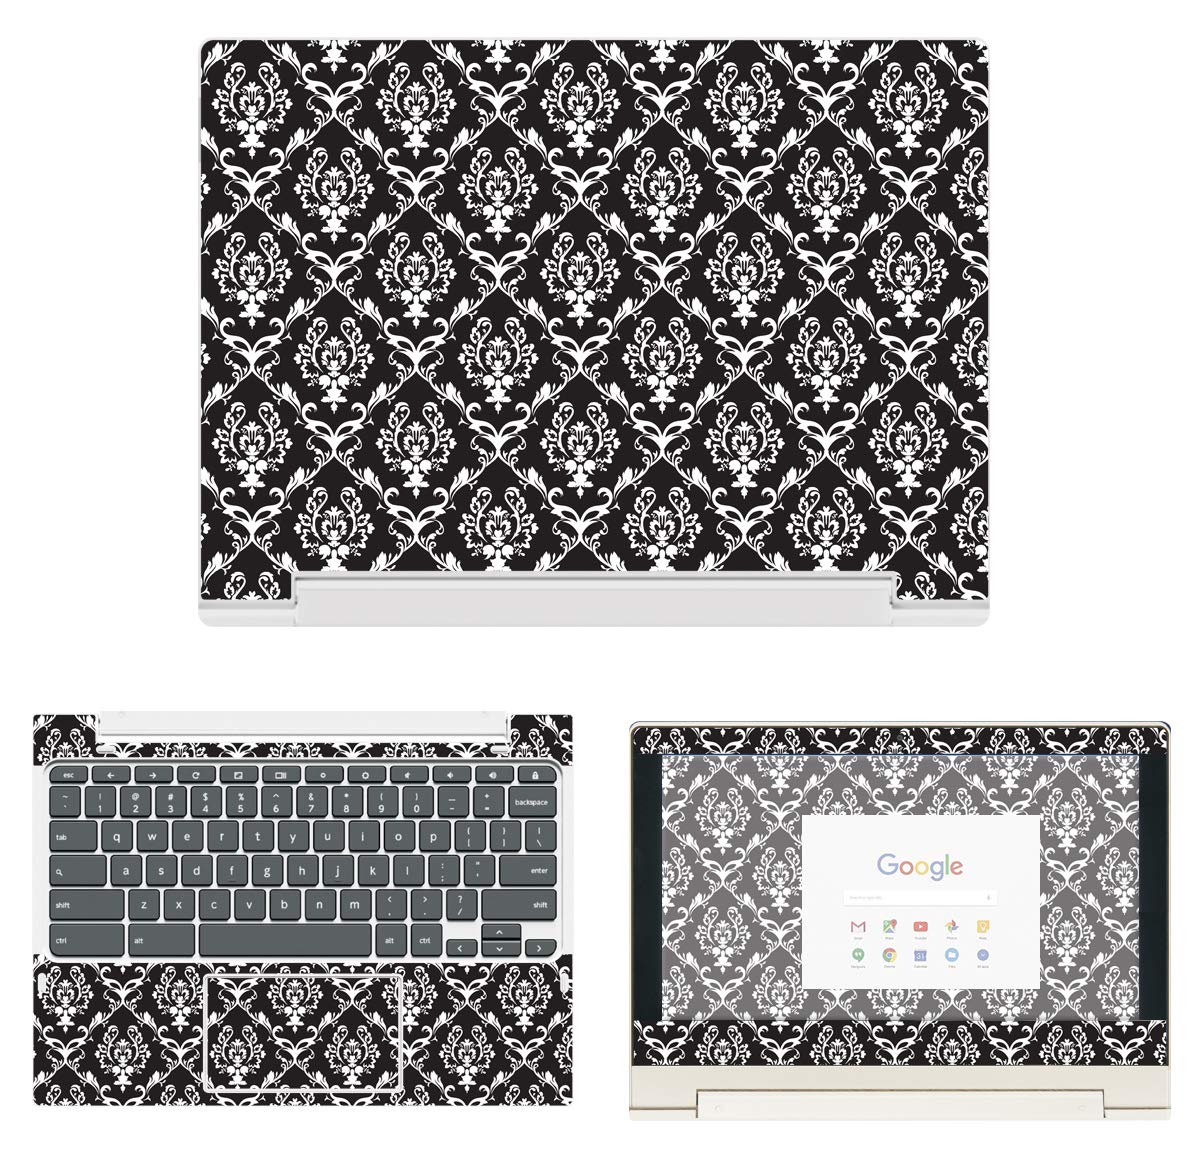 decalrus - Protective Decal Damask Skin Sticker for Lenovo ChromeBook C330 (11.6'' Screen) case Cover wrap LEchrmbookC330-80 by decalrus (Image #1)